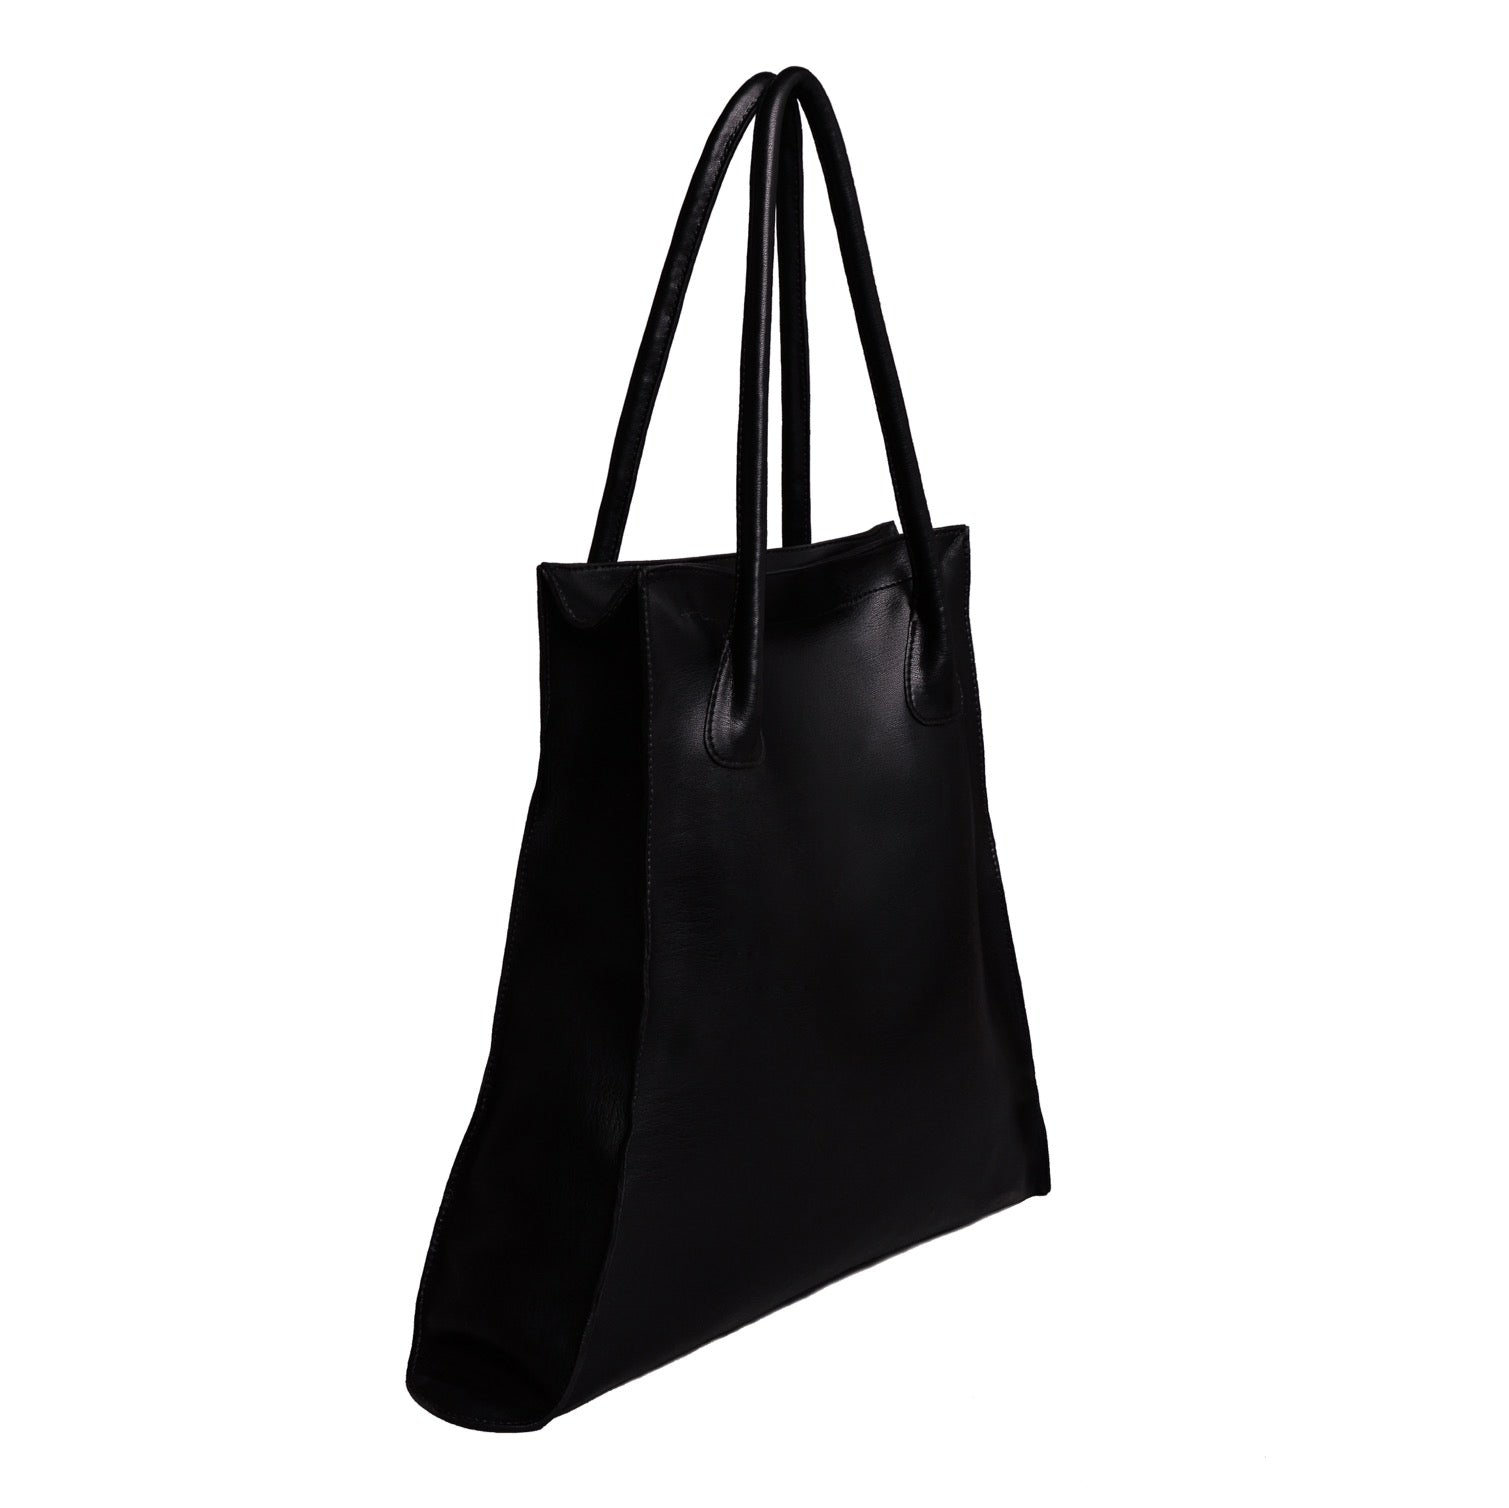 Bags, Luxury, Eco-friendly, Sustainable, Recycled, Vegan, Tote bag, made in Italy, Handmade